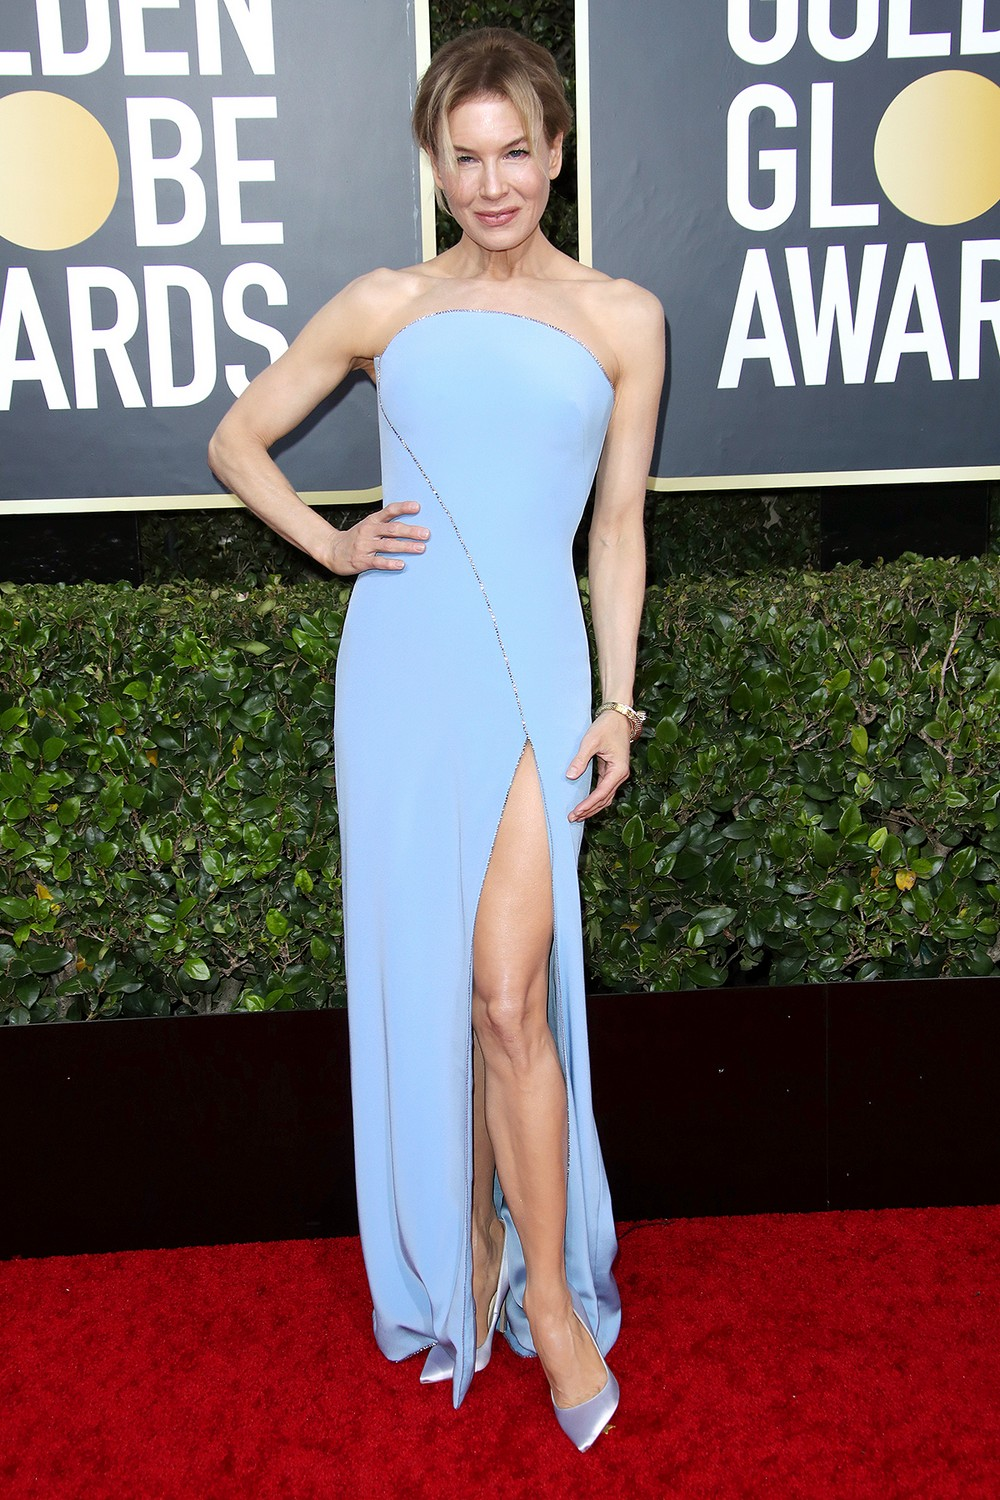 golden globes 2020 Golden Globes 2020: The Most Exciting Looks Seen on the Red Carpet Golden Globes 2020 The Most Exciting Looks Seen on the Red Carpet 9